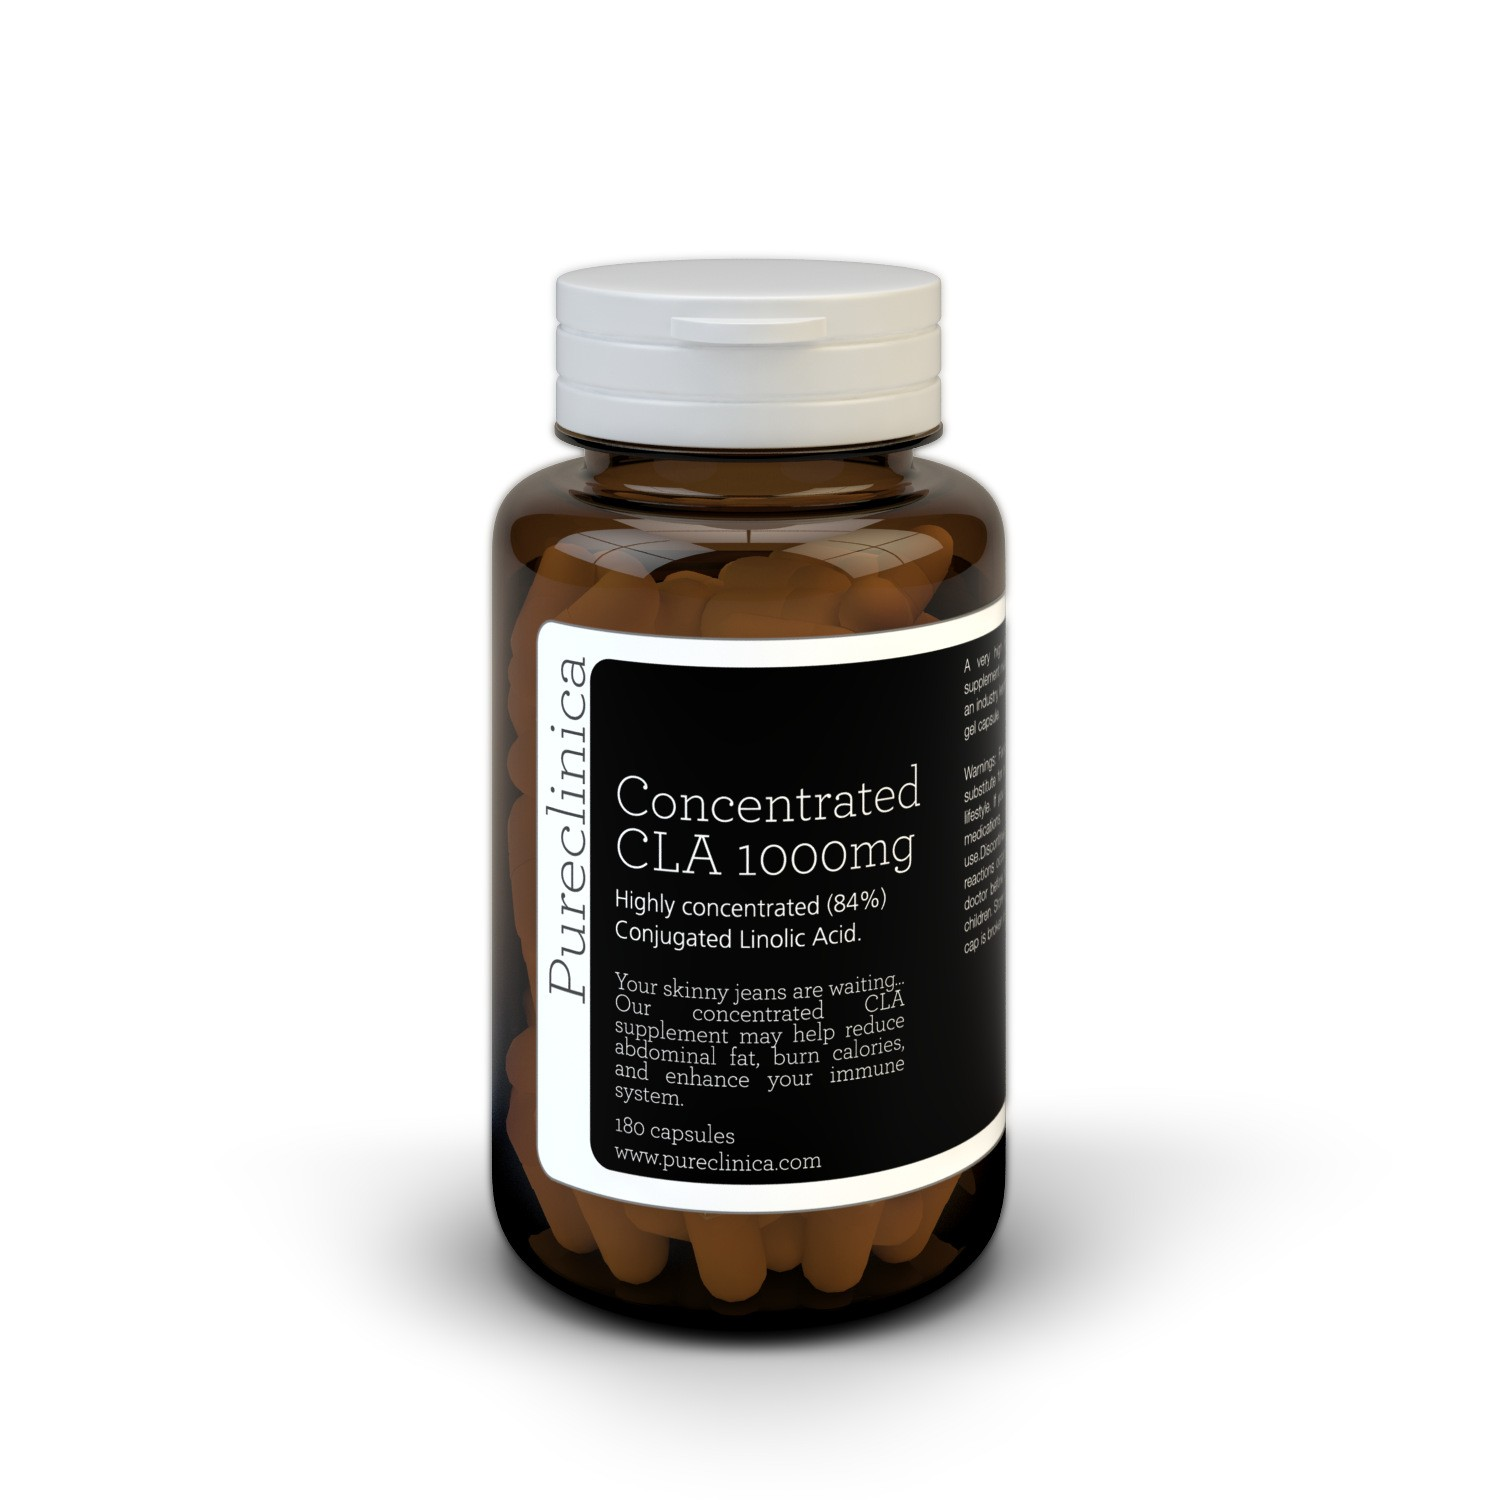 Concentrated CLA 1000mg x 180 capsules